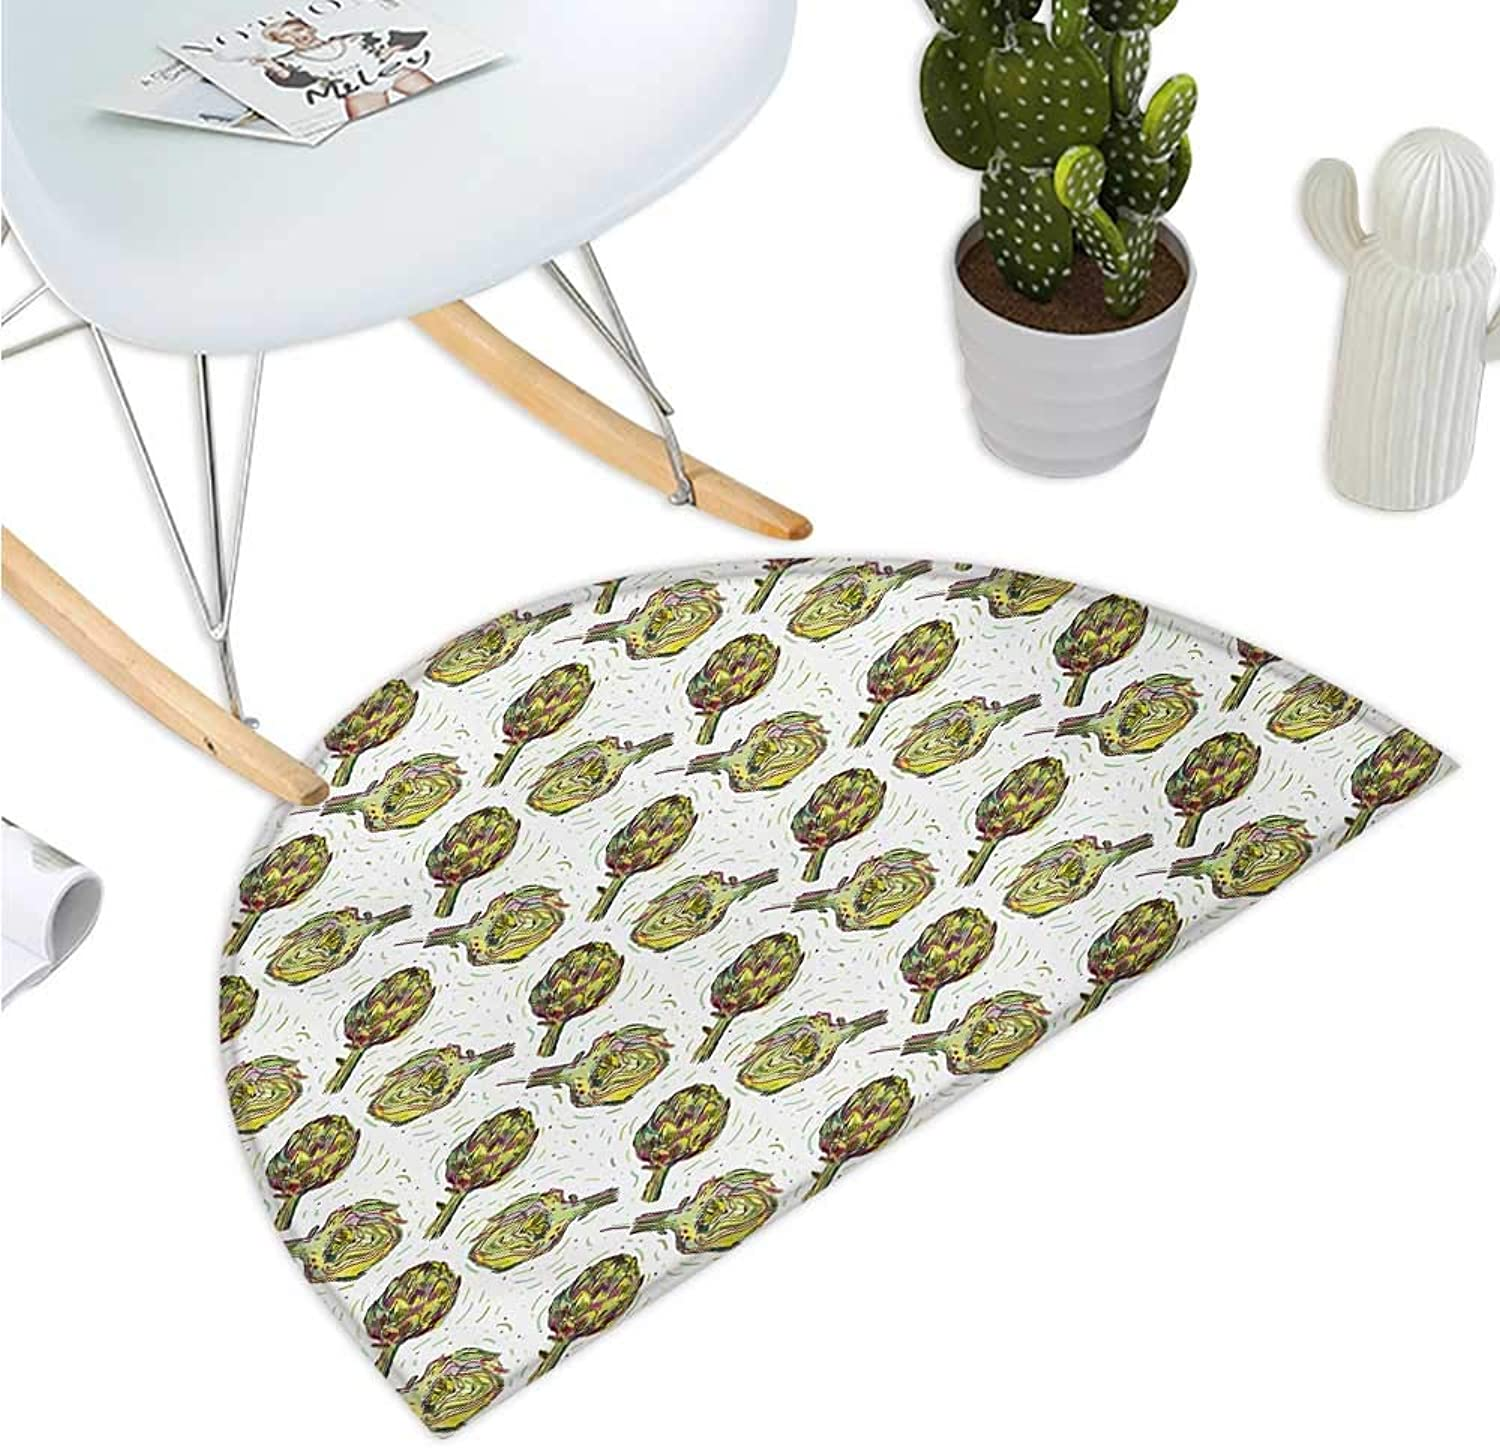 Artichoke Semicircular Cushion Gourmet Food Garden Harvest Vegetables Seasonal Vegetarian Options Bathroom Mat H 35.4  xD 53.1  Fern Green and Purple